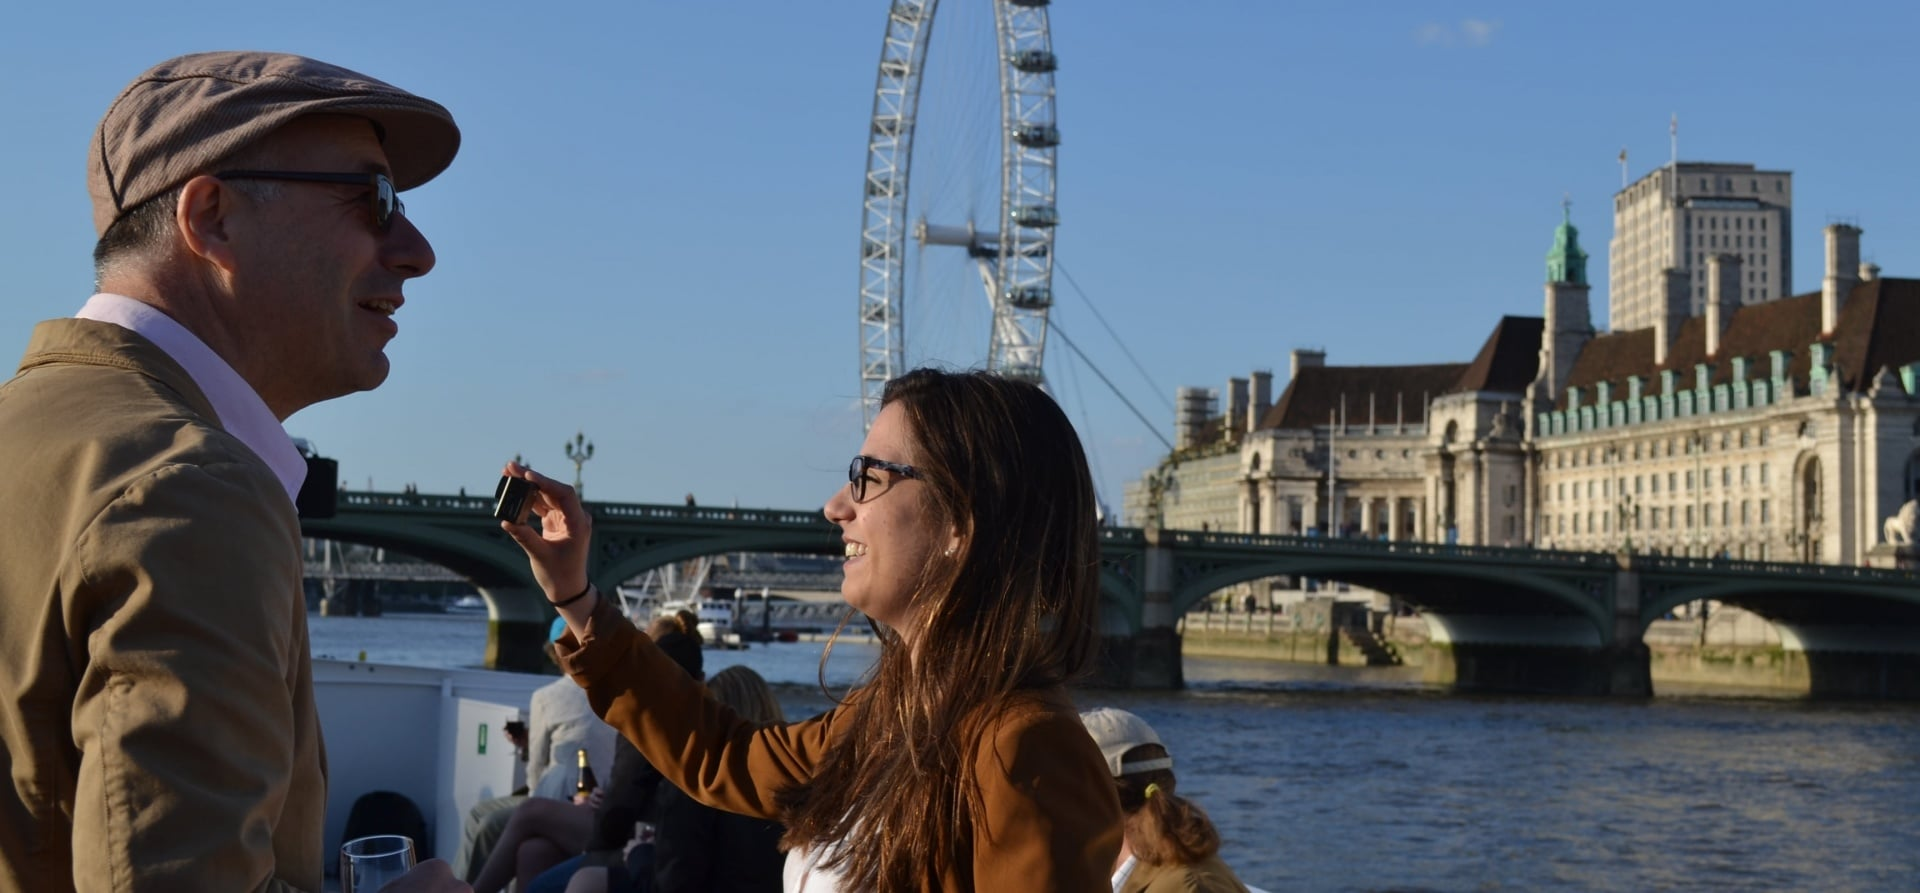 Sundowner Cruise on the Thames for Two-5